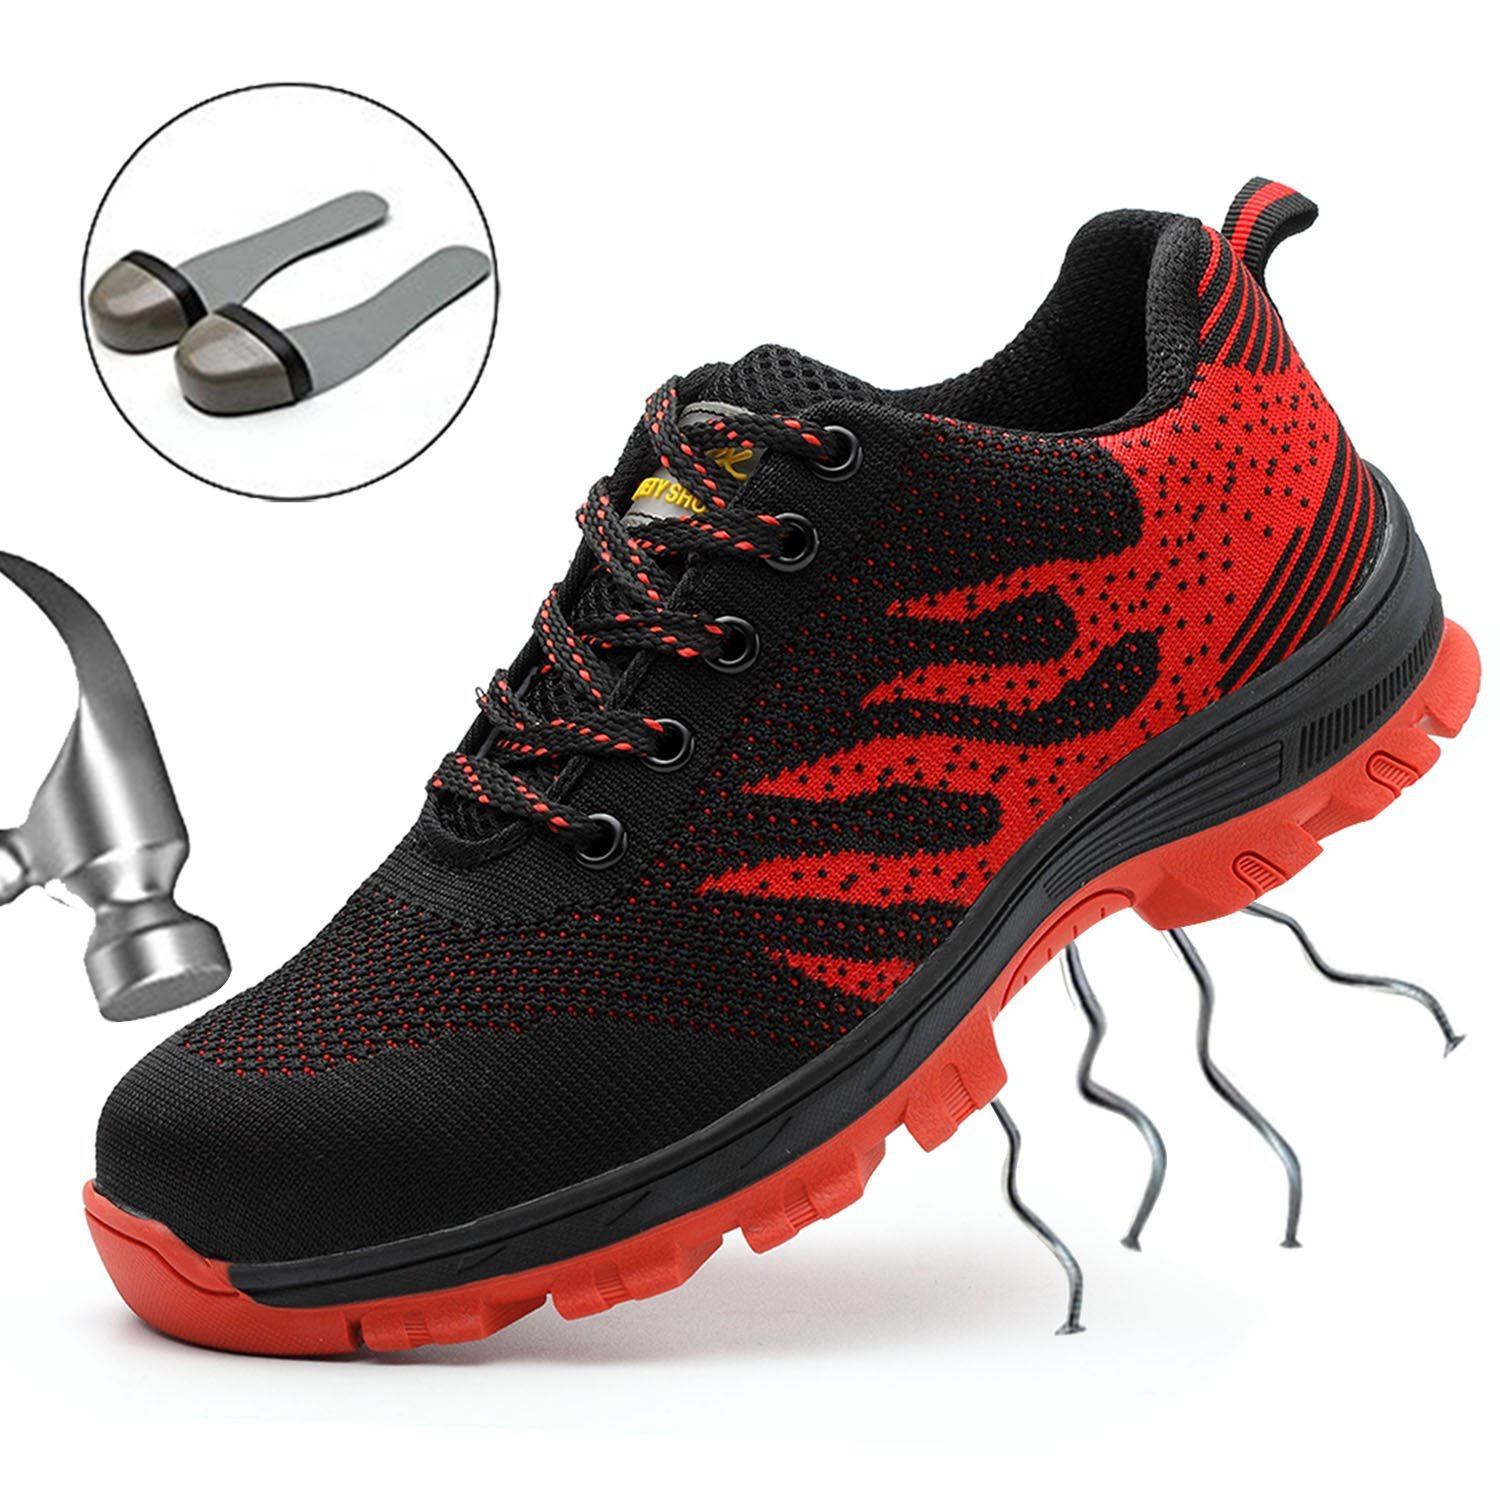 SUADEEX Steel Toe Shoes Men, Work Shoes, Safety Shoes, Steel Toe Boots for Men